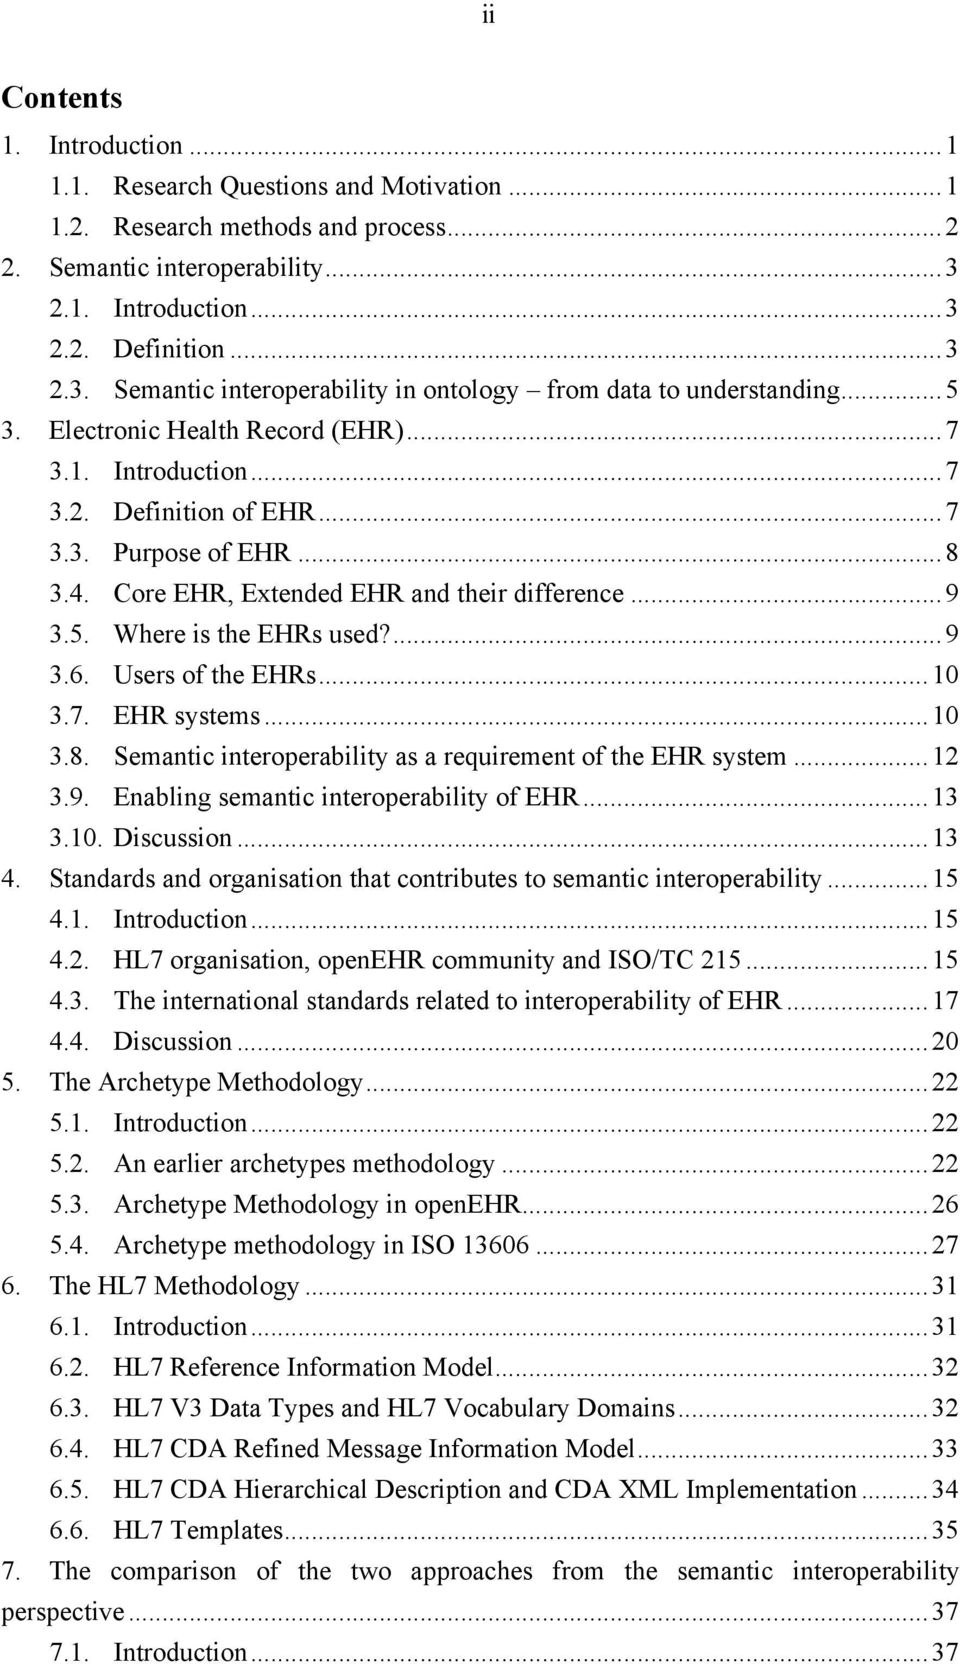 .. 7 3.3. Purpose of EHR... 8 3.4. Core EHR, Extended EHR and their difference... 9 3.5. Where is the EHRs used?... 9 3.6. Users of the EHRs... 10 3.7. EHR systems... 10 3.8. Semantic interoperability as a requirement of the EHR system.